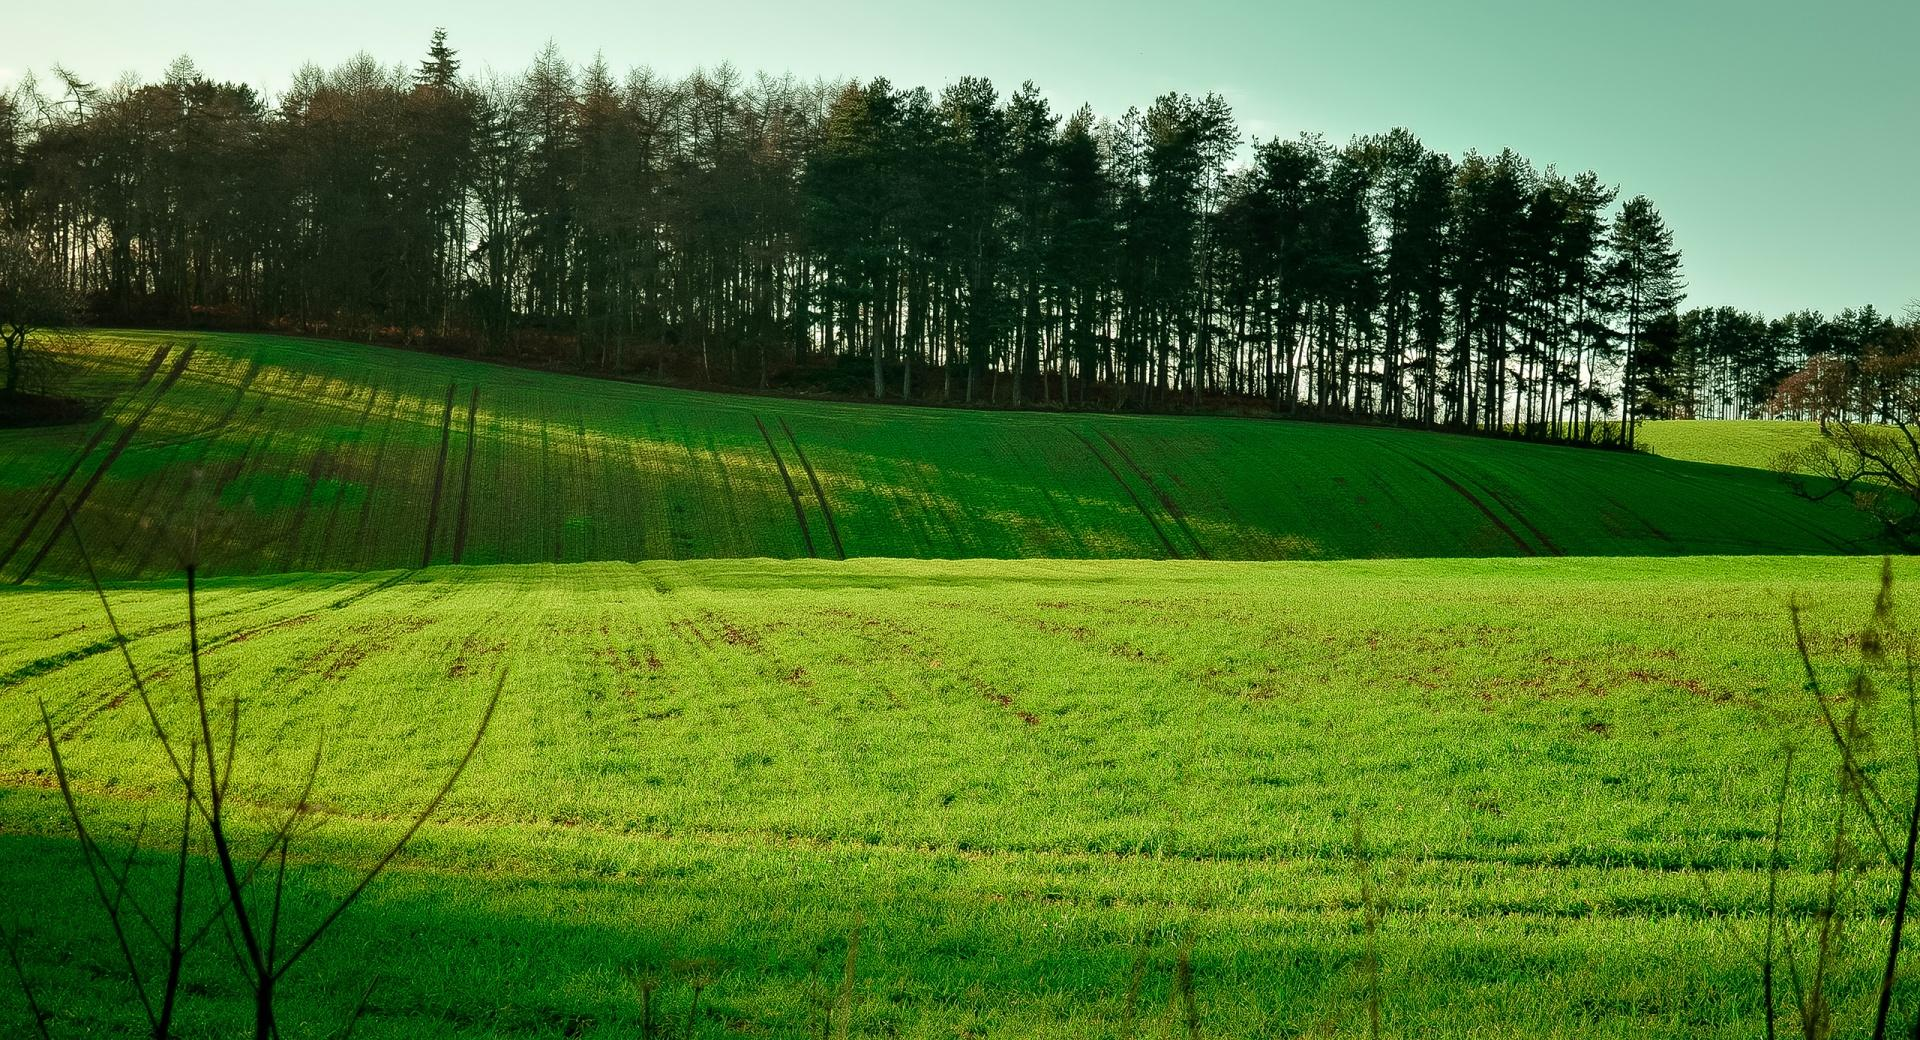 Long Exposure Field wallpapers HD quality